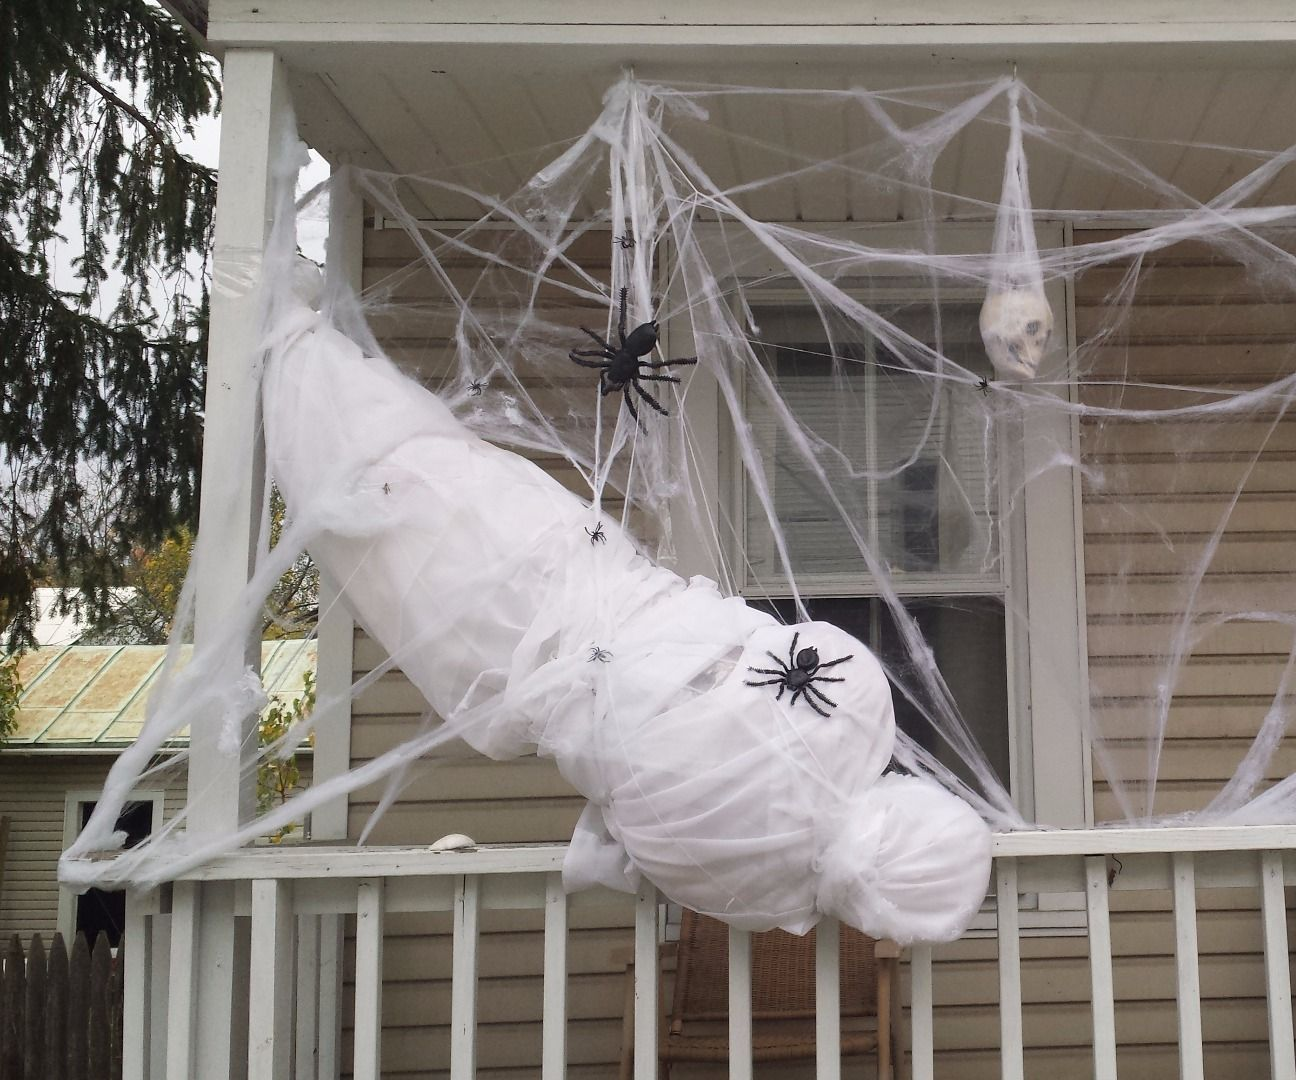 Life-size Spider Victim This is a great high-impact (and easy!) outside decoration for Halloween. If you can use materials commonly found around the house, it's also inexpens...This is a great high-impact (and easy!) outside decoration for Halloween. If you can use materials commonly found around the house, it's also inexpens...